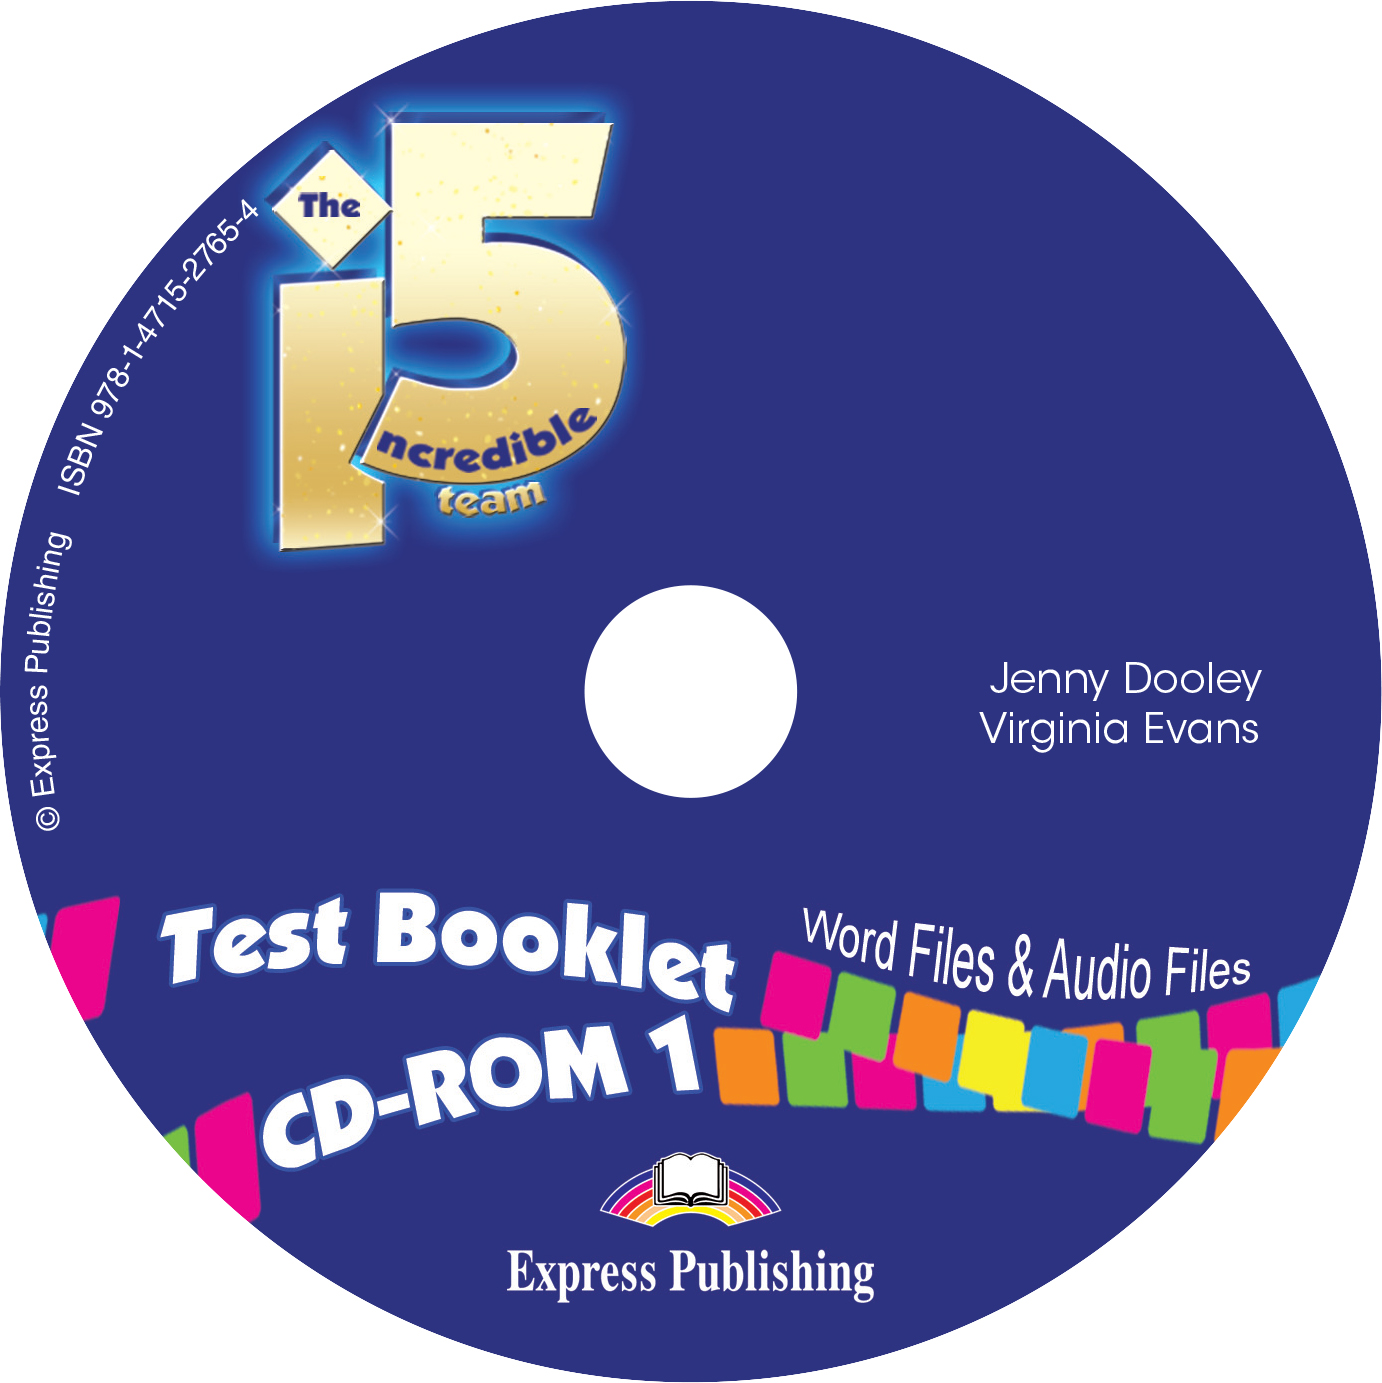 INCREDIBLE 5 TEAM 1 CD-ROM TEST (GREECE)